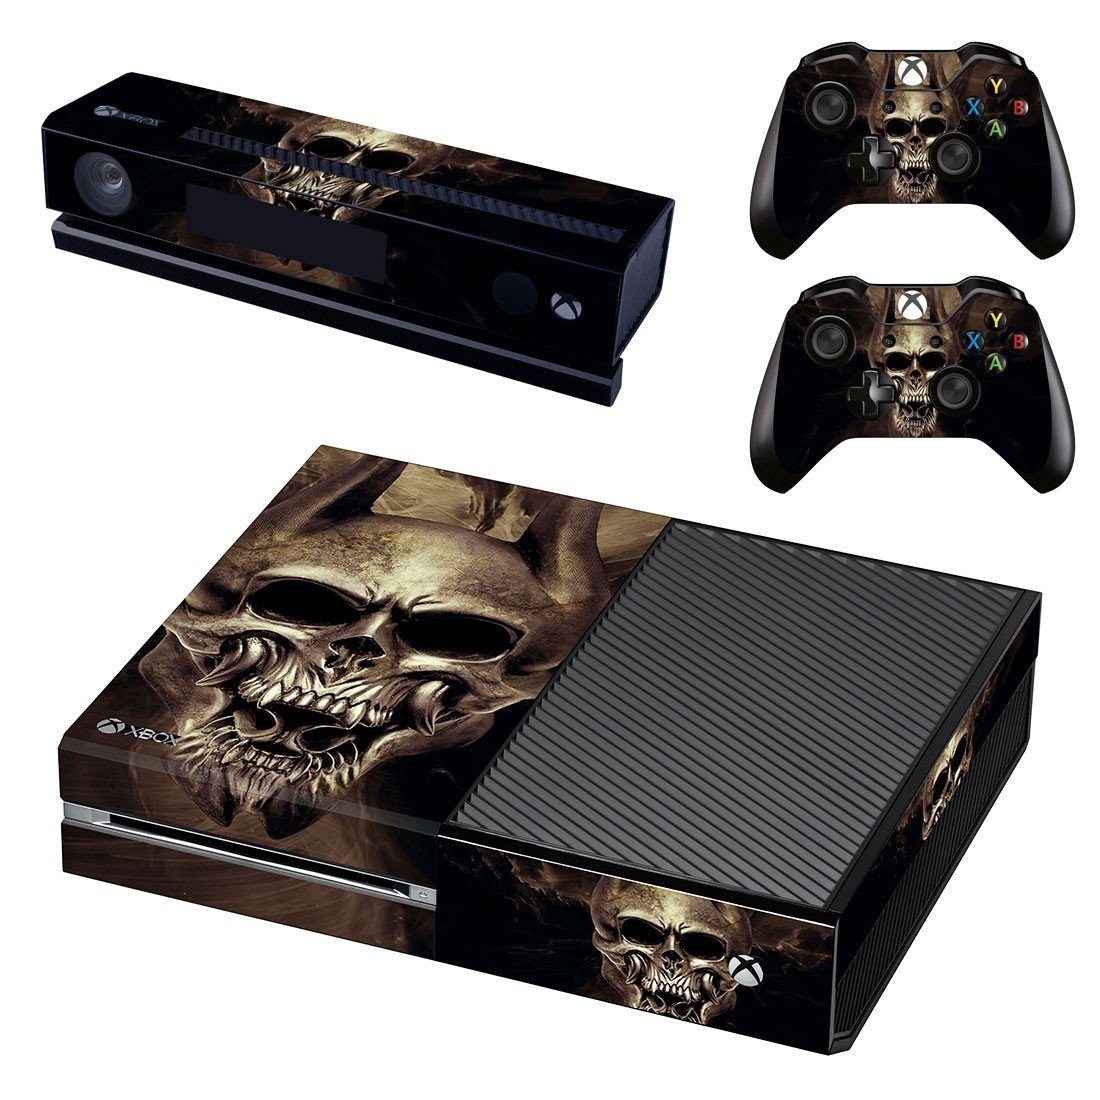 Trivium until the world goes cold skin decal for Xbox one console and controllers